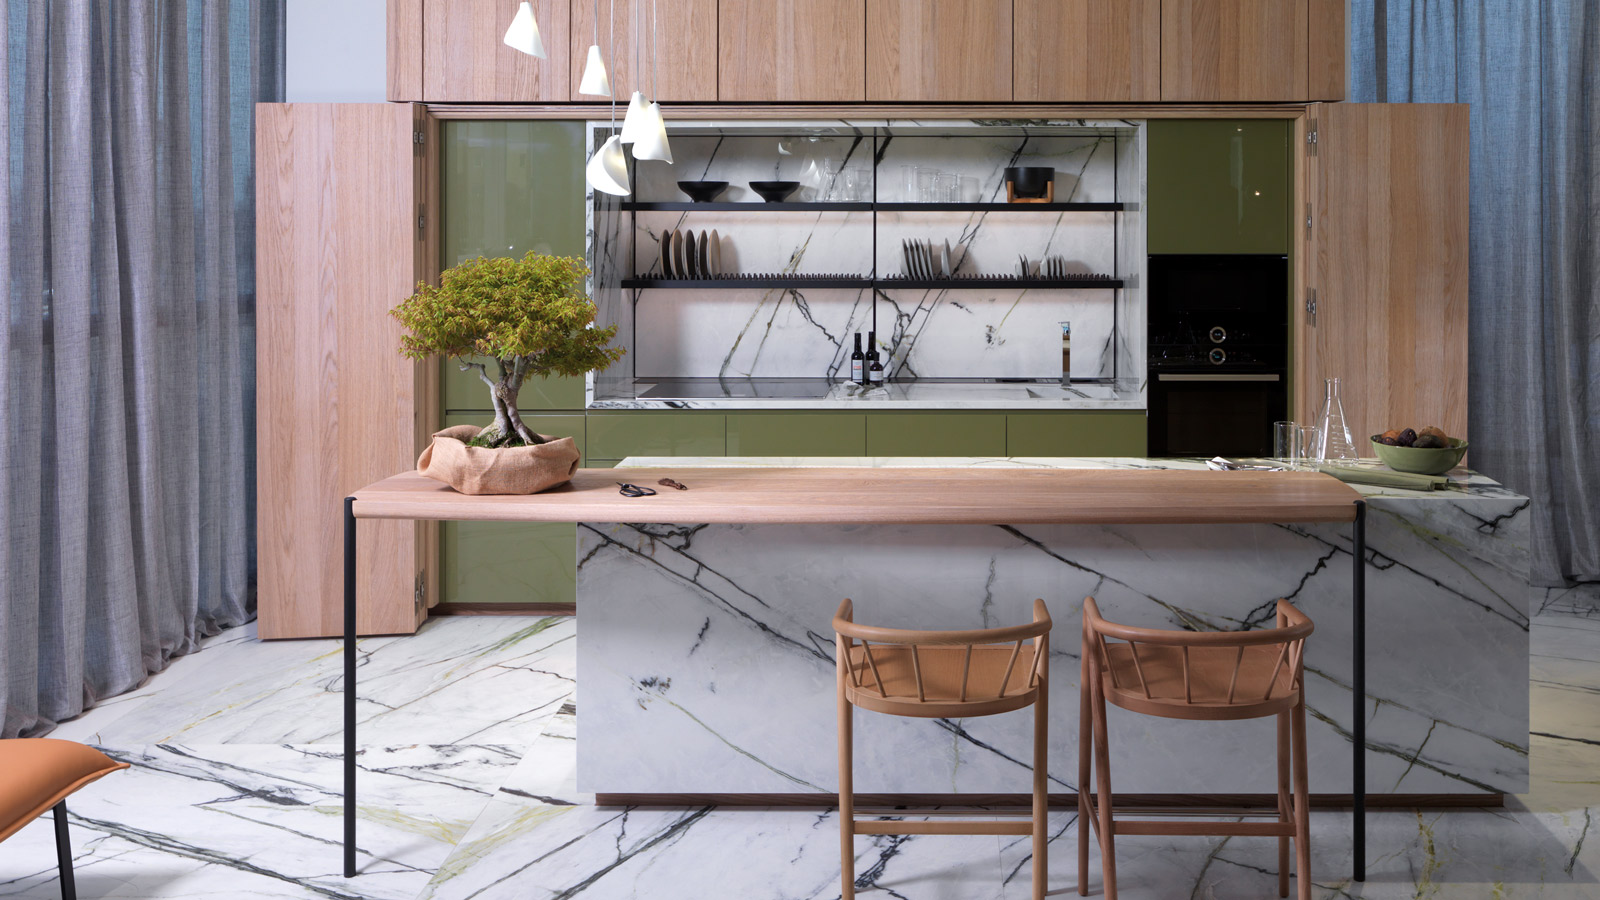 Keys to a functional and modern kitchen